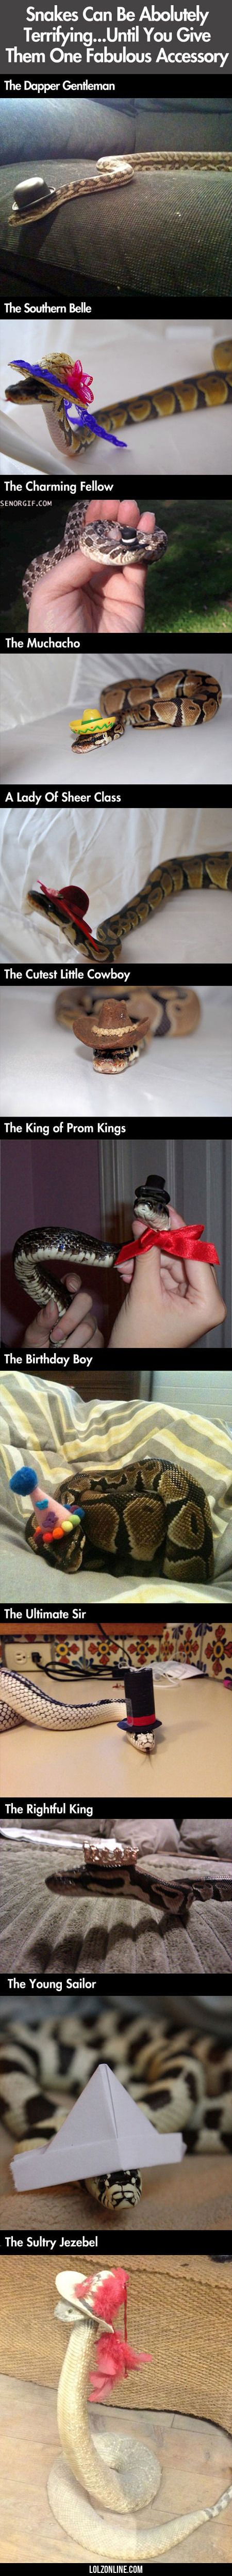 Snakes Can Be Asolutely Terrifying#funny #lol #lolzonline